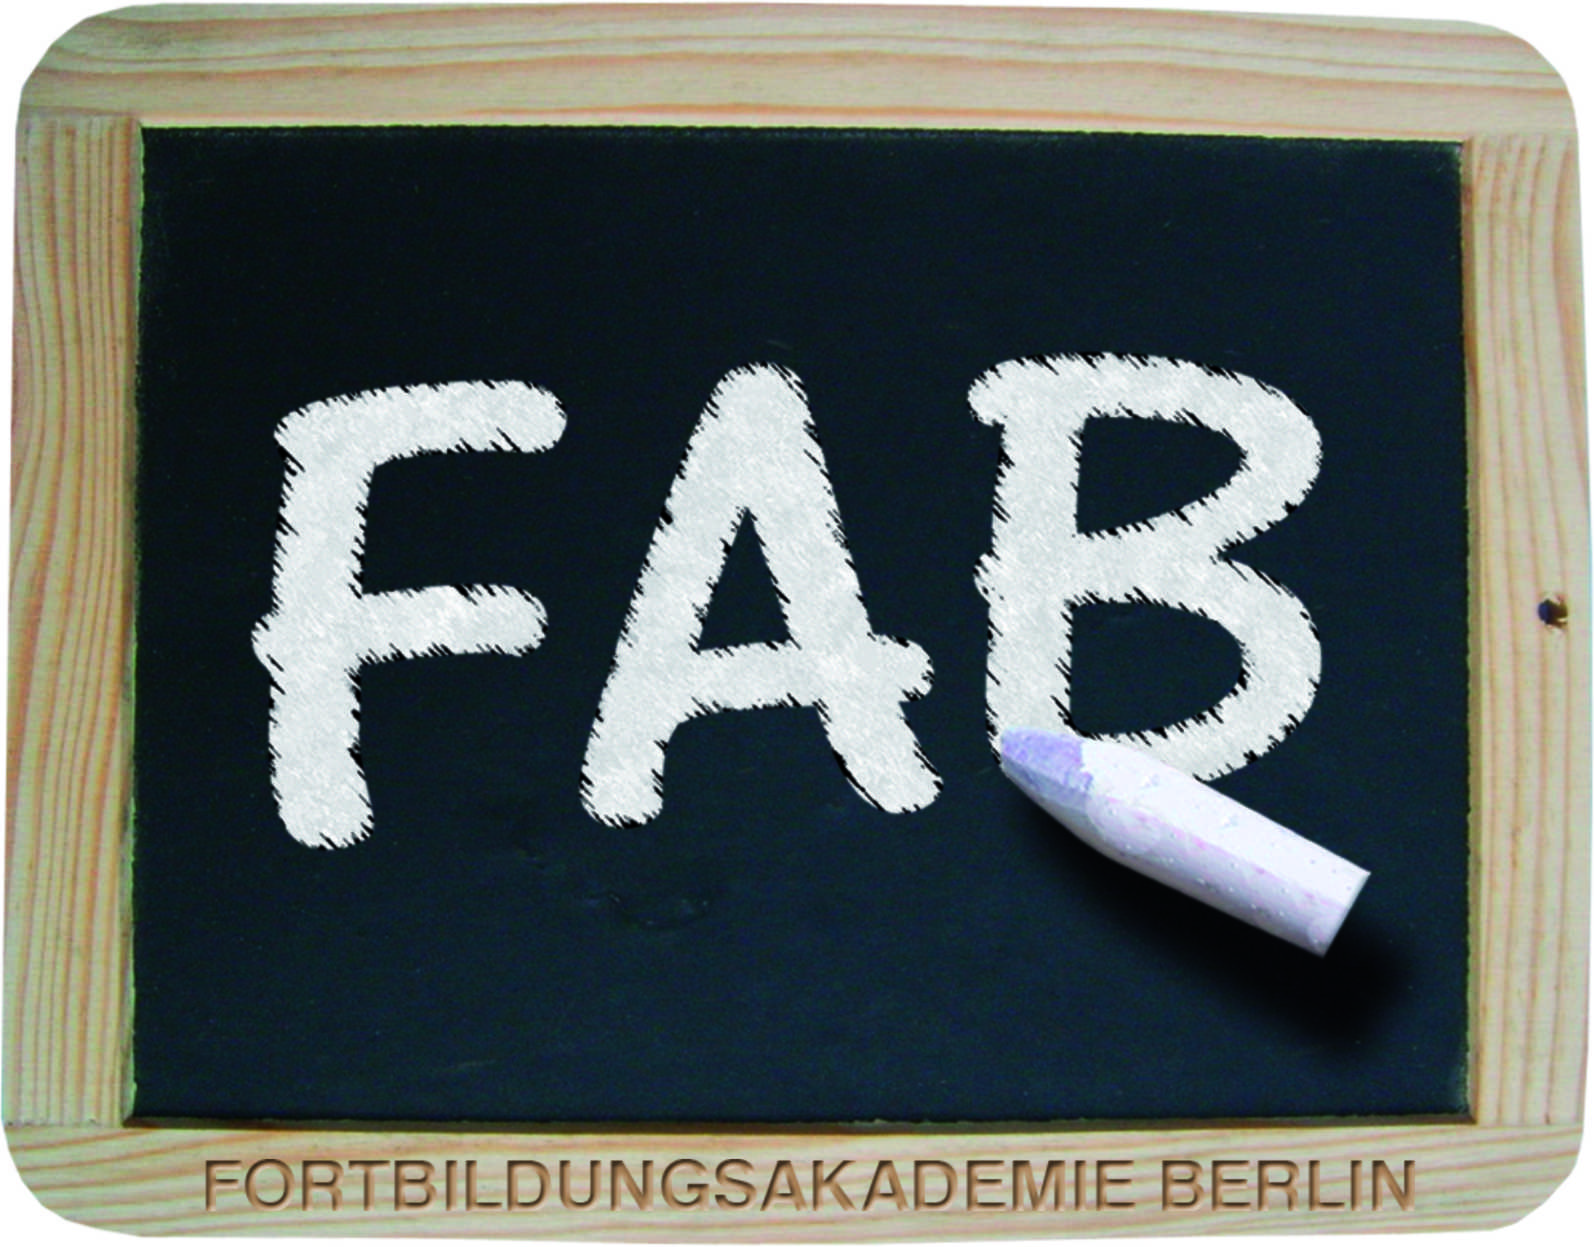 Fortbildungsakademie-Berlin-Arno-Tillack-Corporate-Identity-Website-Logo